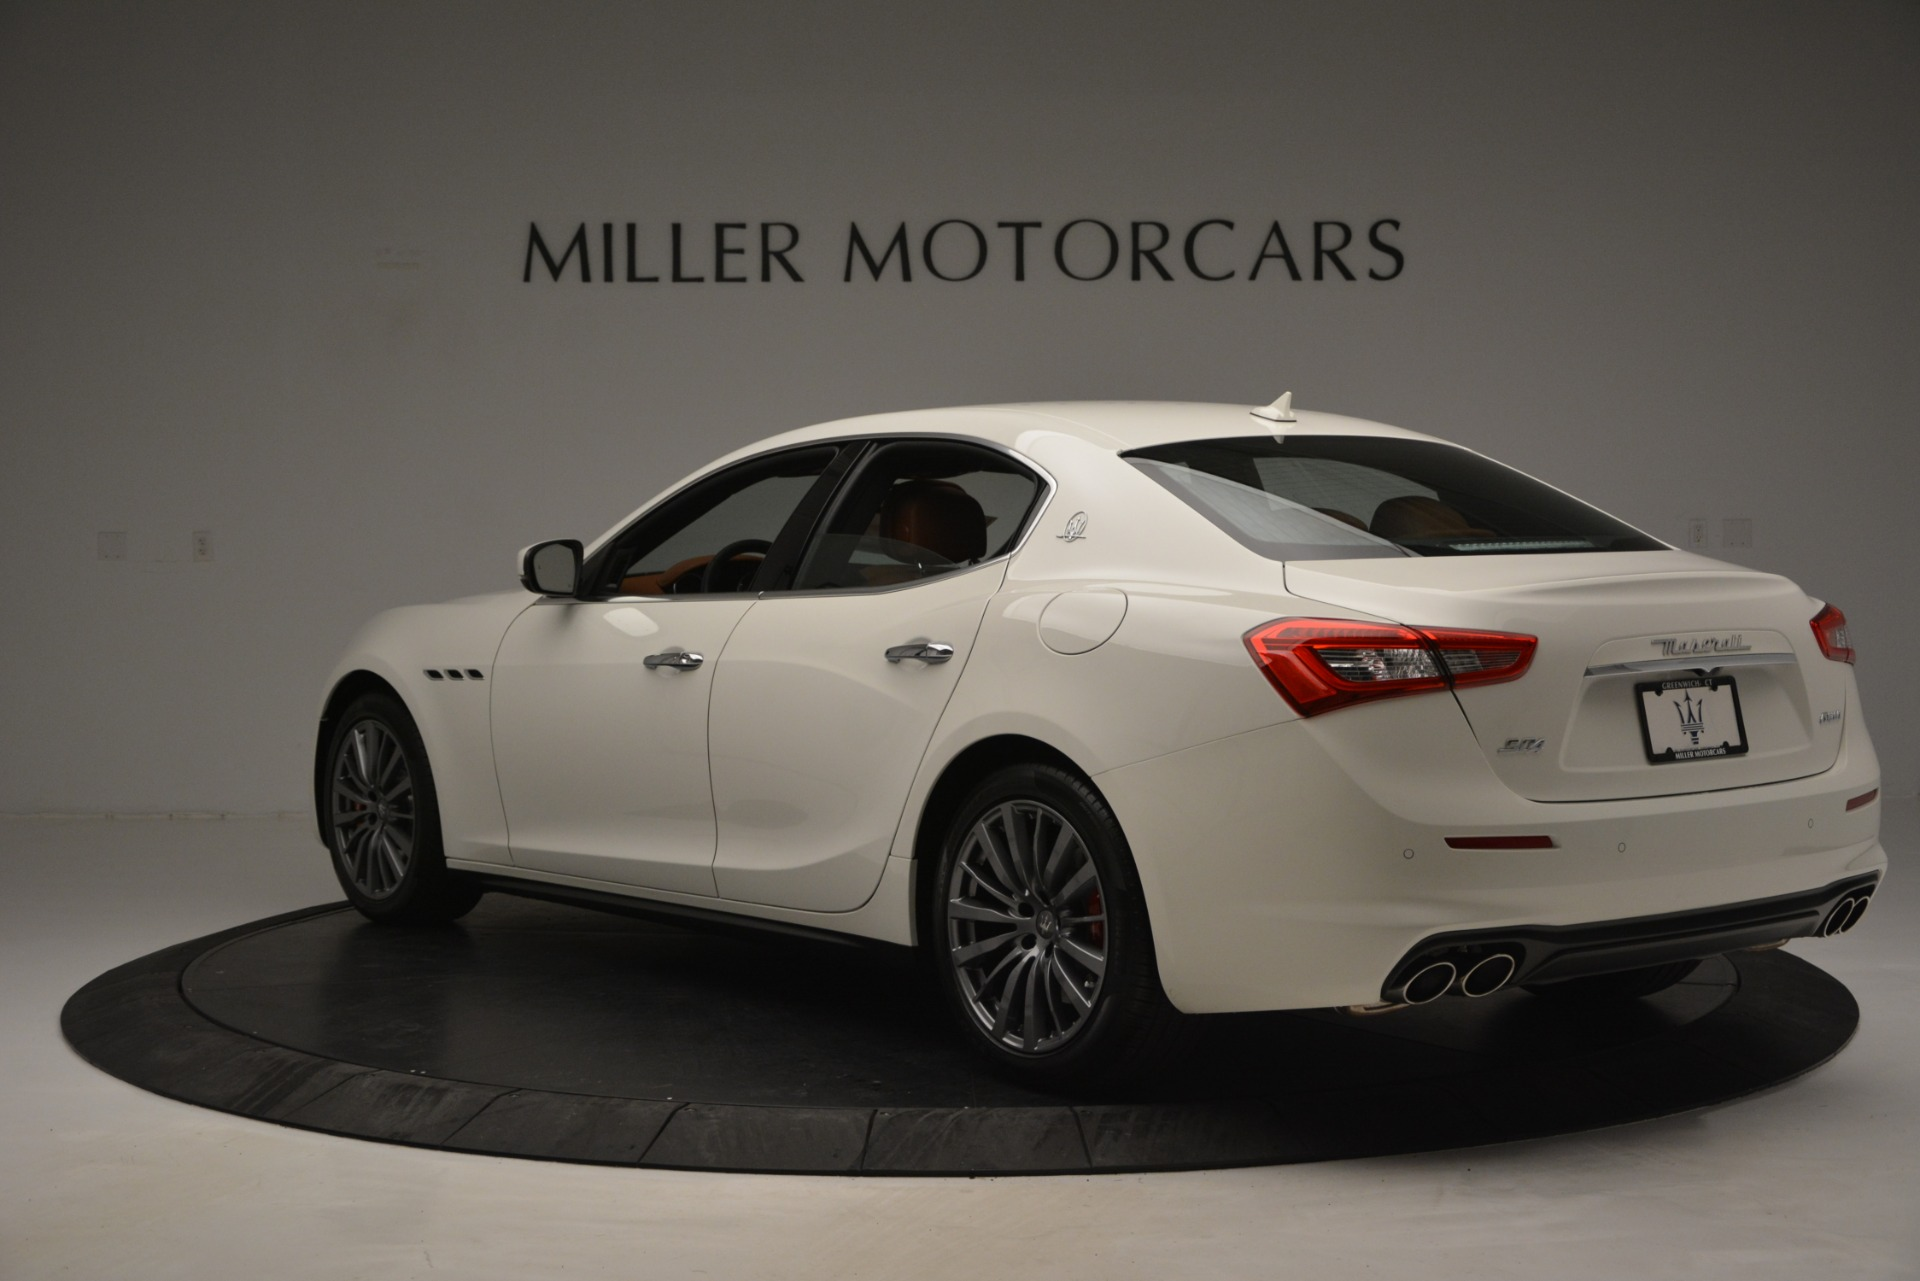 New 2019 Maserati Ghibli S Q4 For Sale In Greenwich, CT 2795_p6